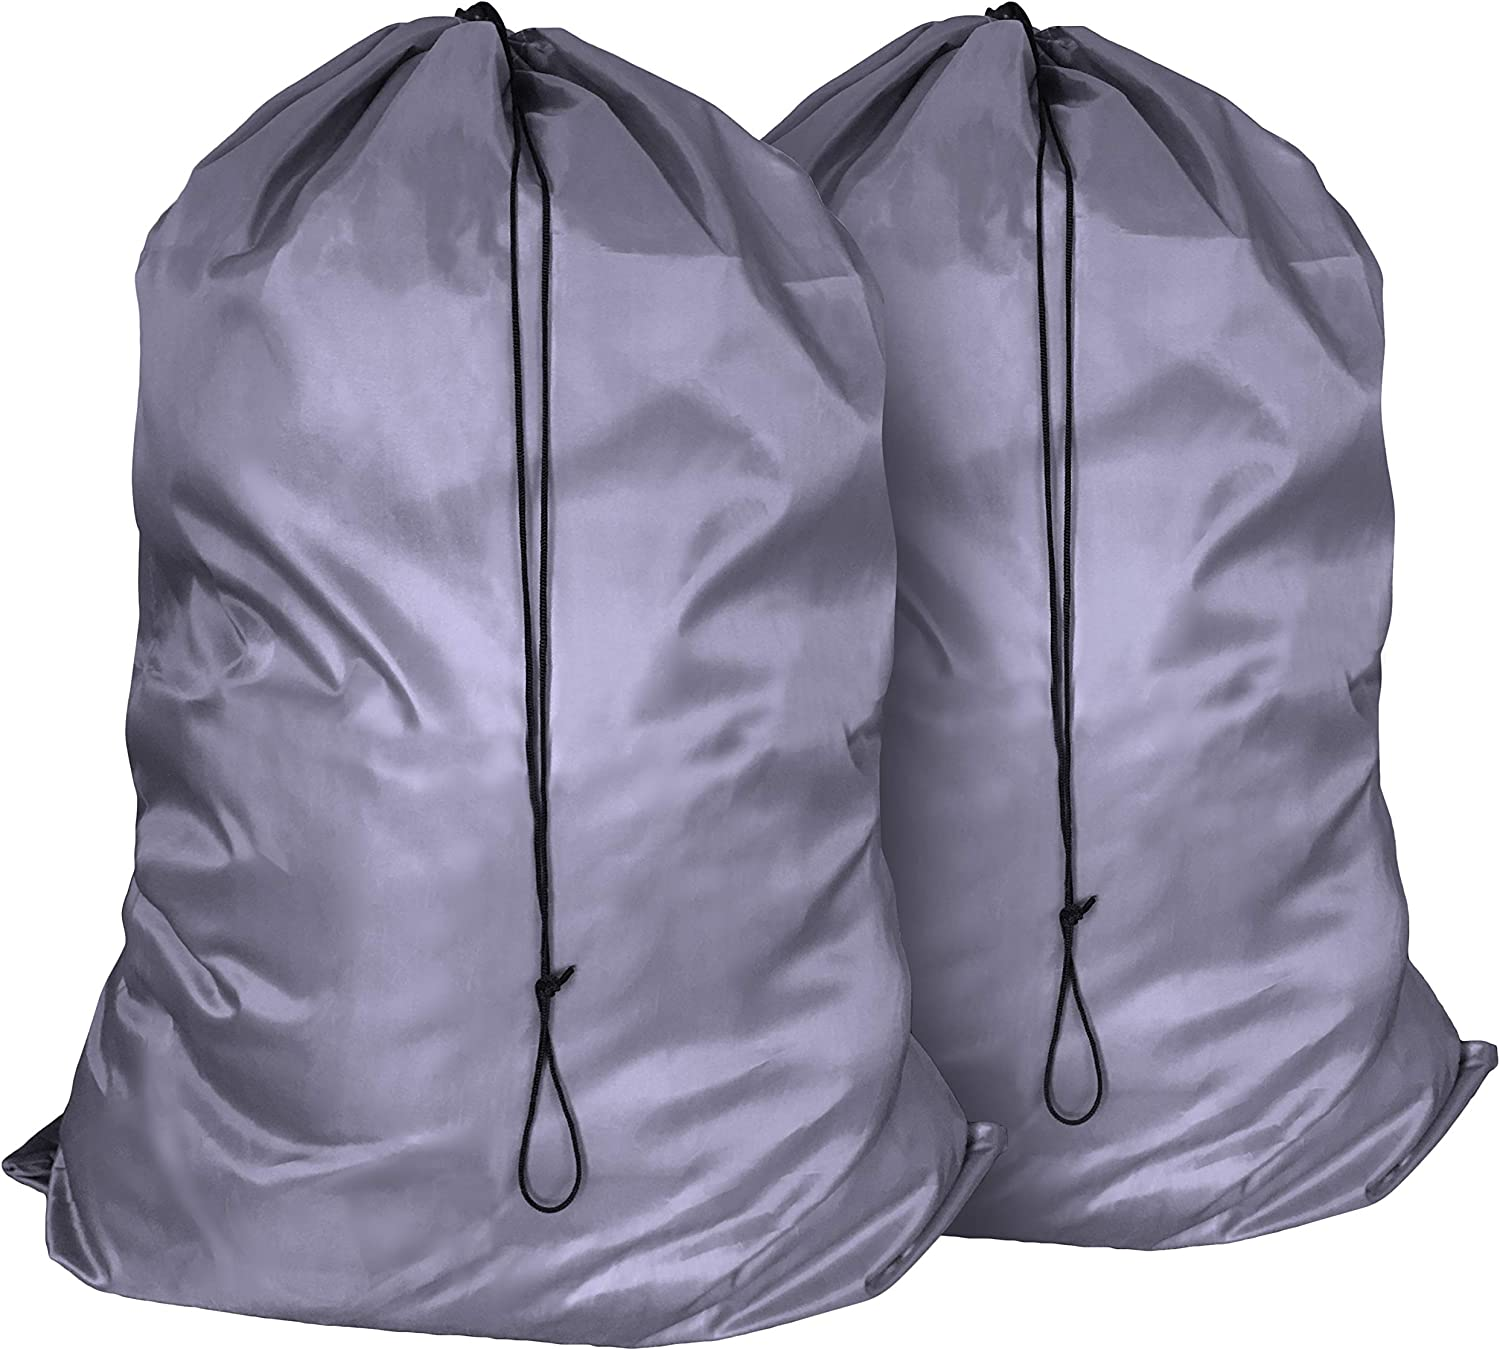 Ziz Home Heavy Duty Nylon Laundry Bags, Pack of 2, Extra Large Travel Laundry Bag, Ripstop Nylon Dirty Clothes Bags, Anti-Odor Laundry Hamper Liners, Machine Washable, 35 x 24 Inches, Grey